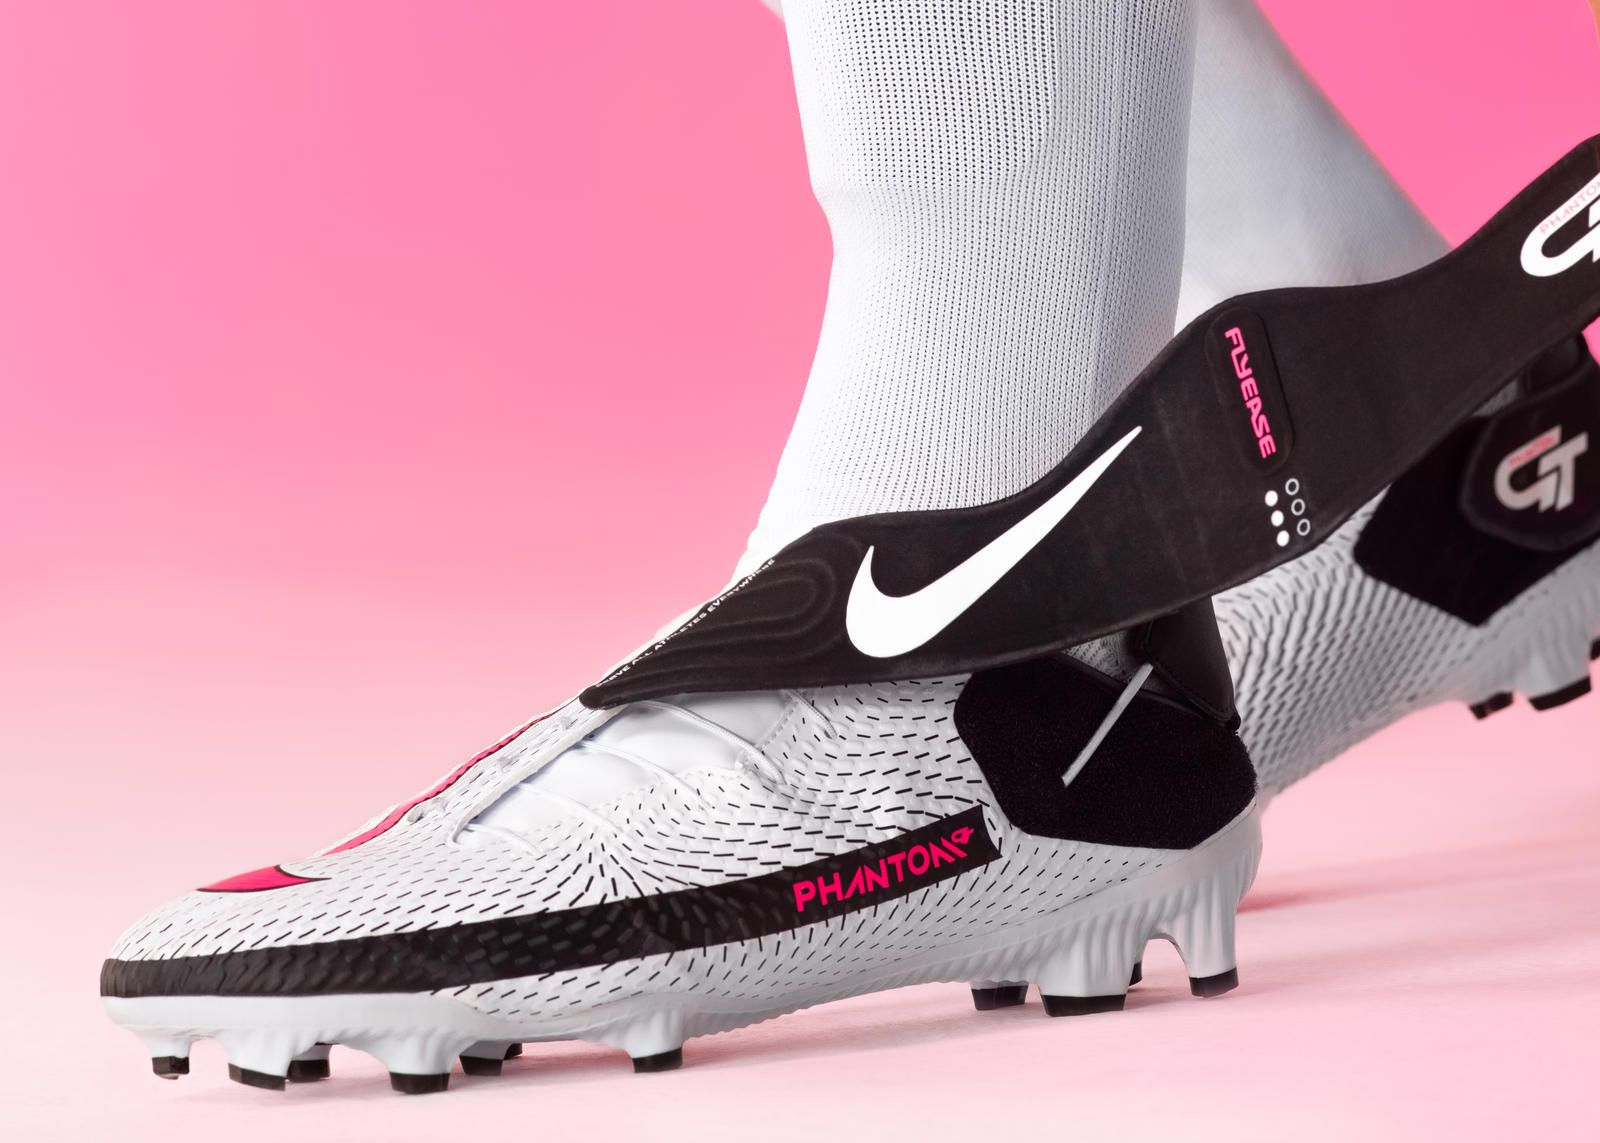 Introducing Phantom Gt The Most Data Driven Boot Nike Has Ever Created In 2020 Football Boots Nike Soccer Cleats